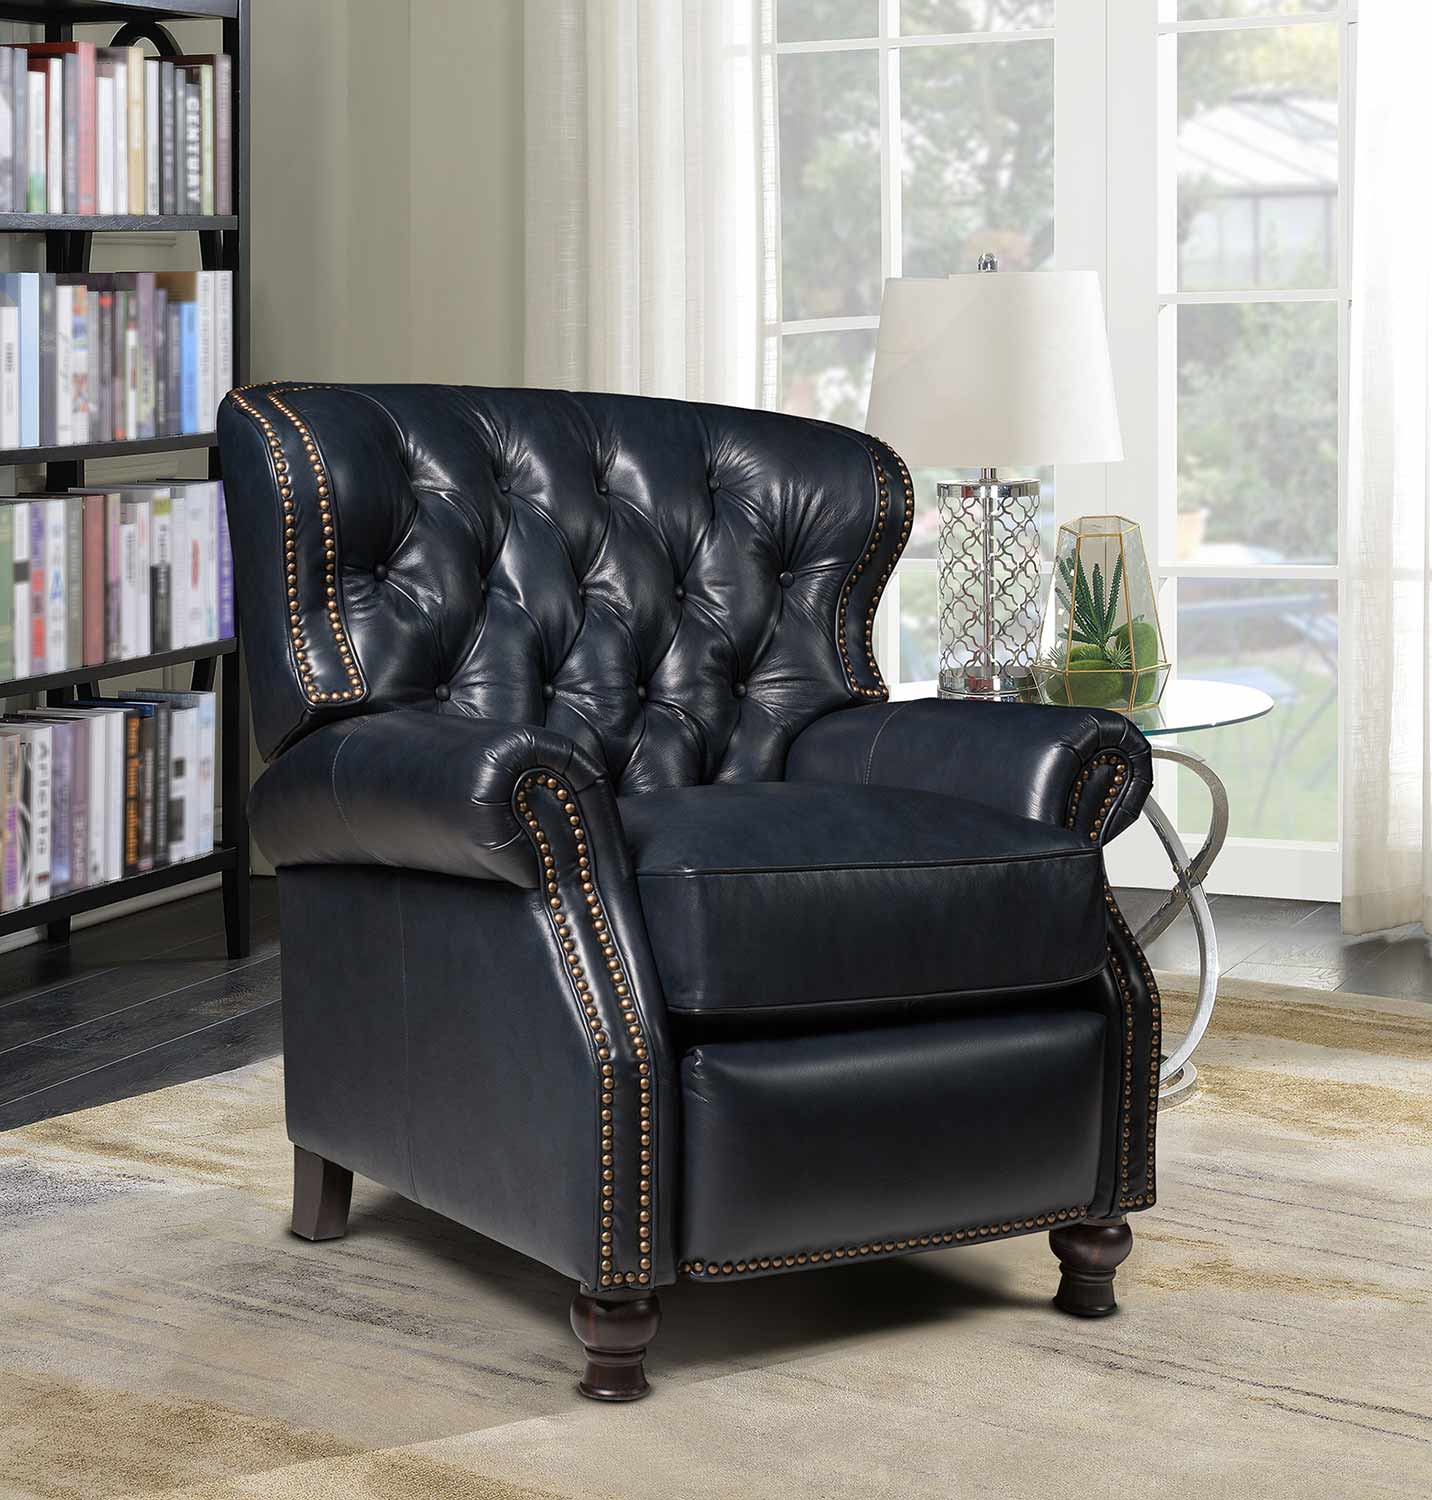 Barcalounger Presidential Recliner Chair - Shoreham Blue/All Leather